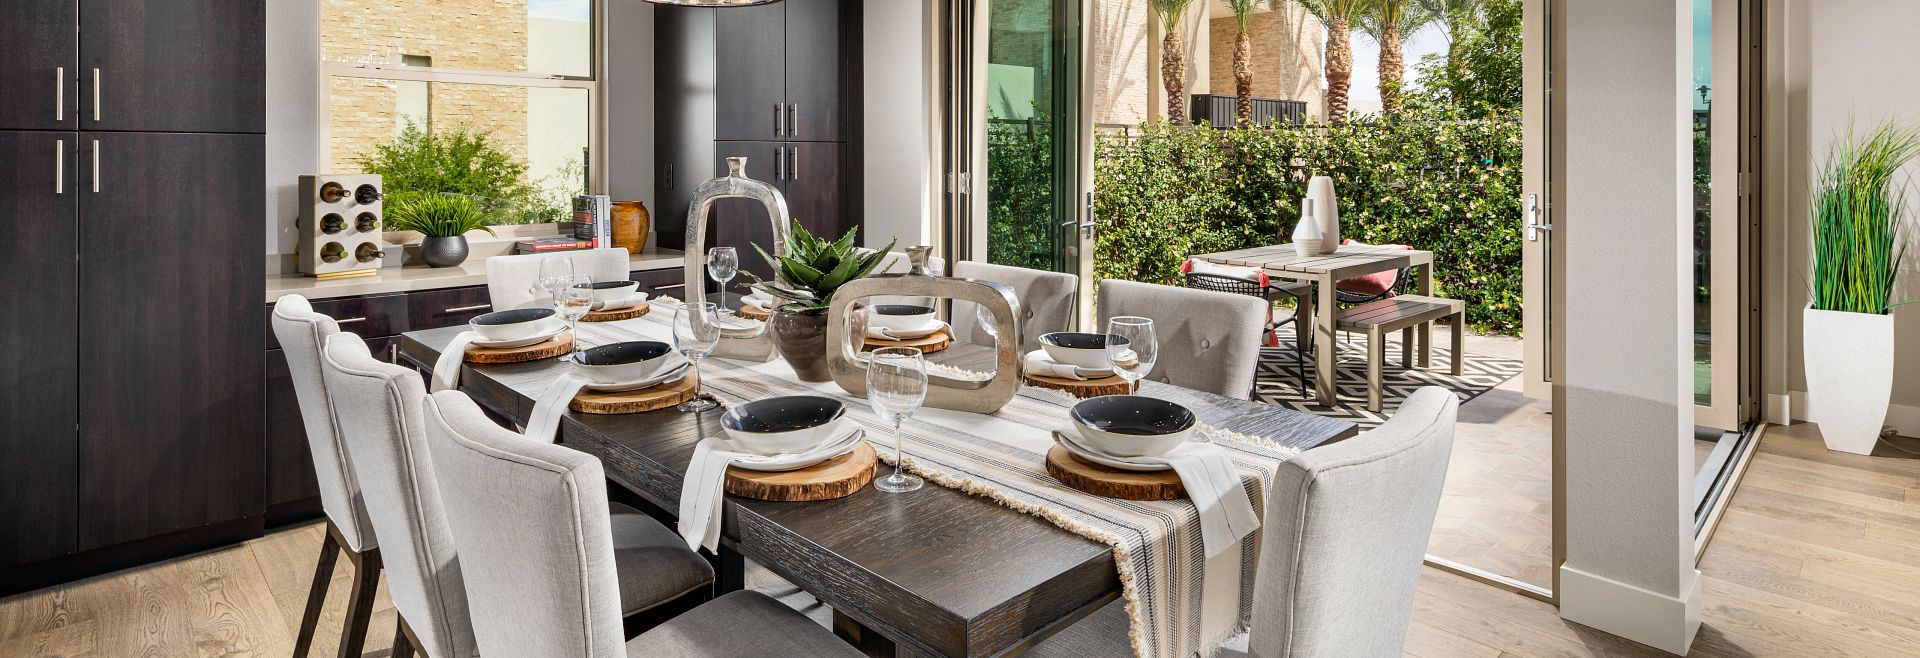 Trilogy Summerlin Radiant Dining Room,